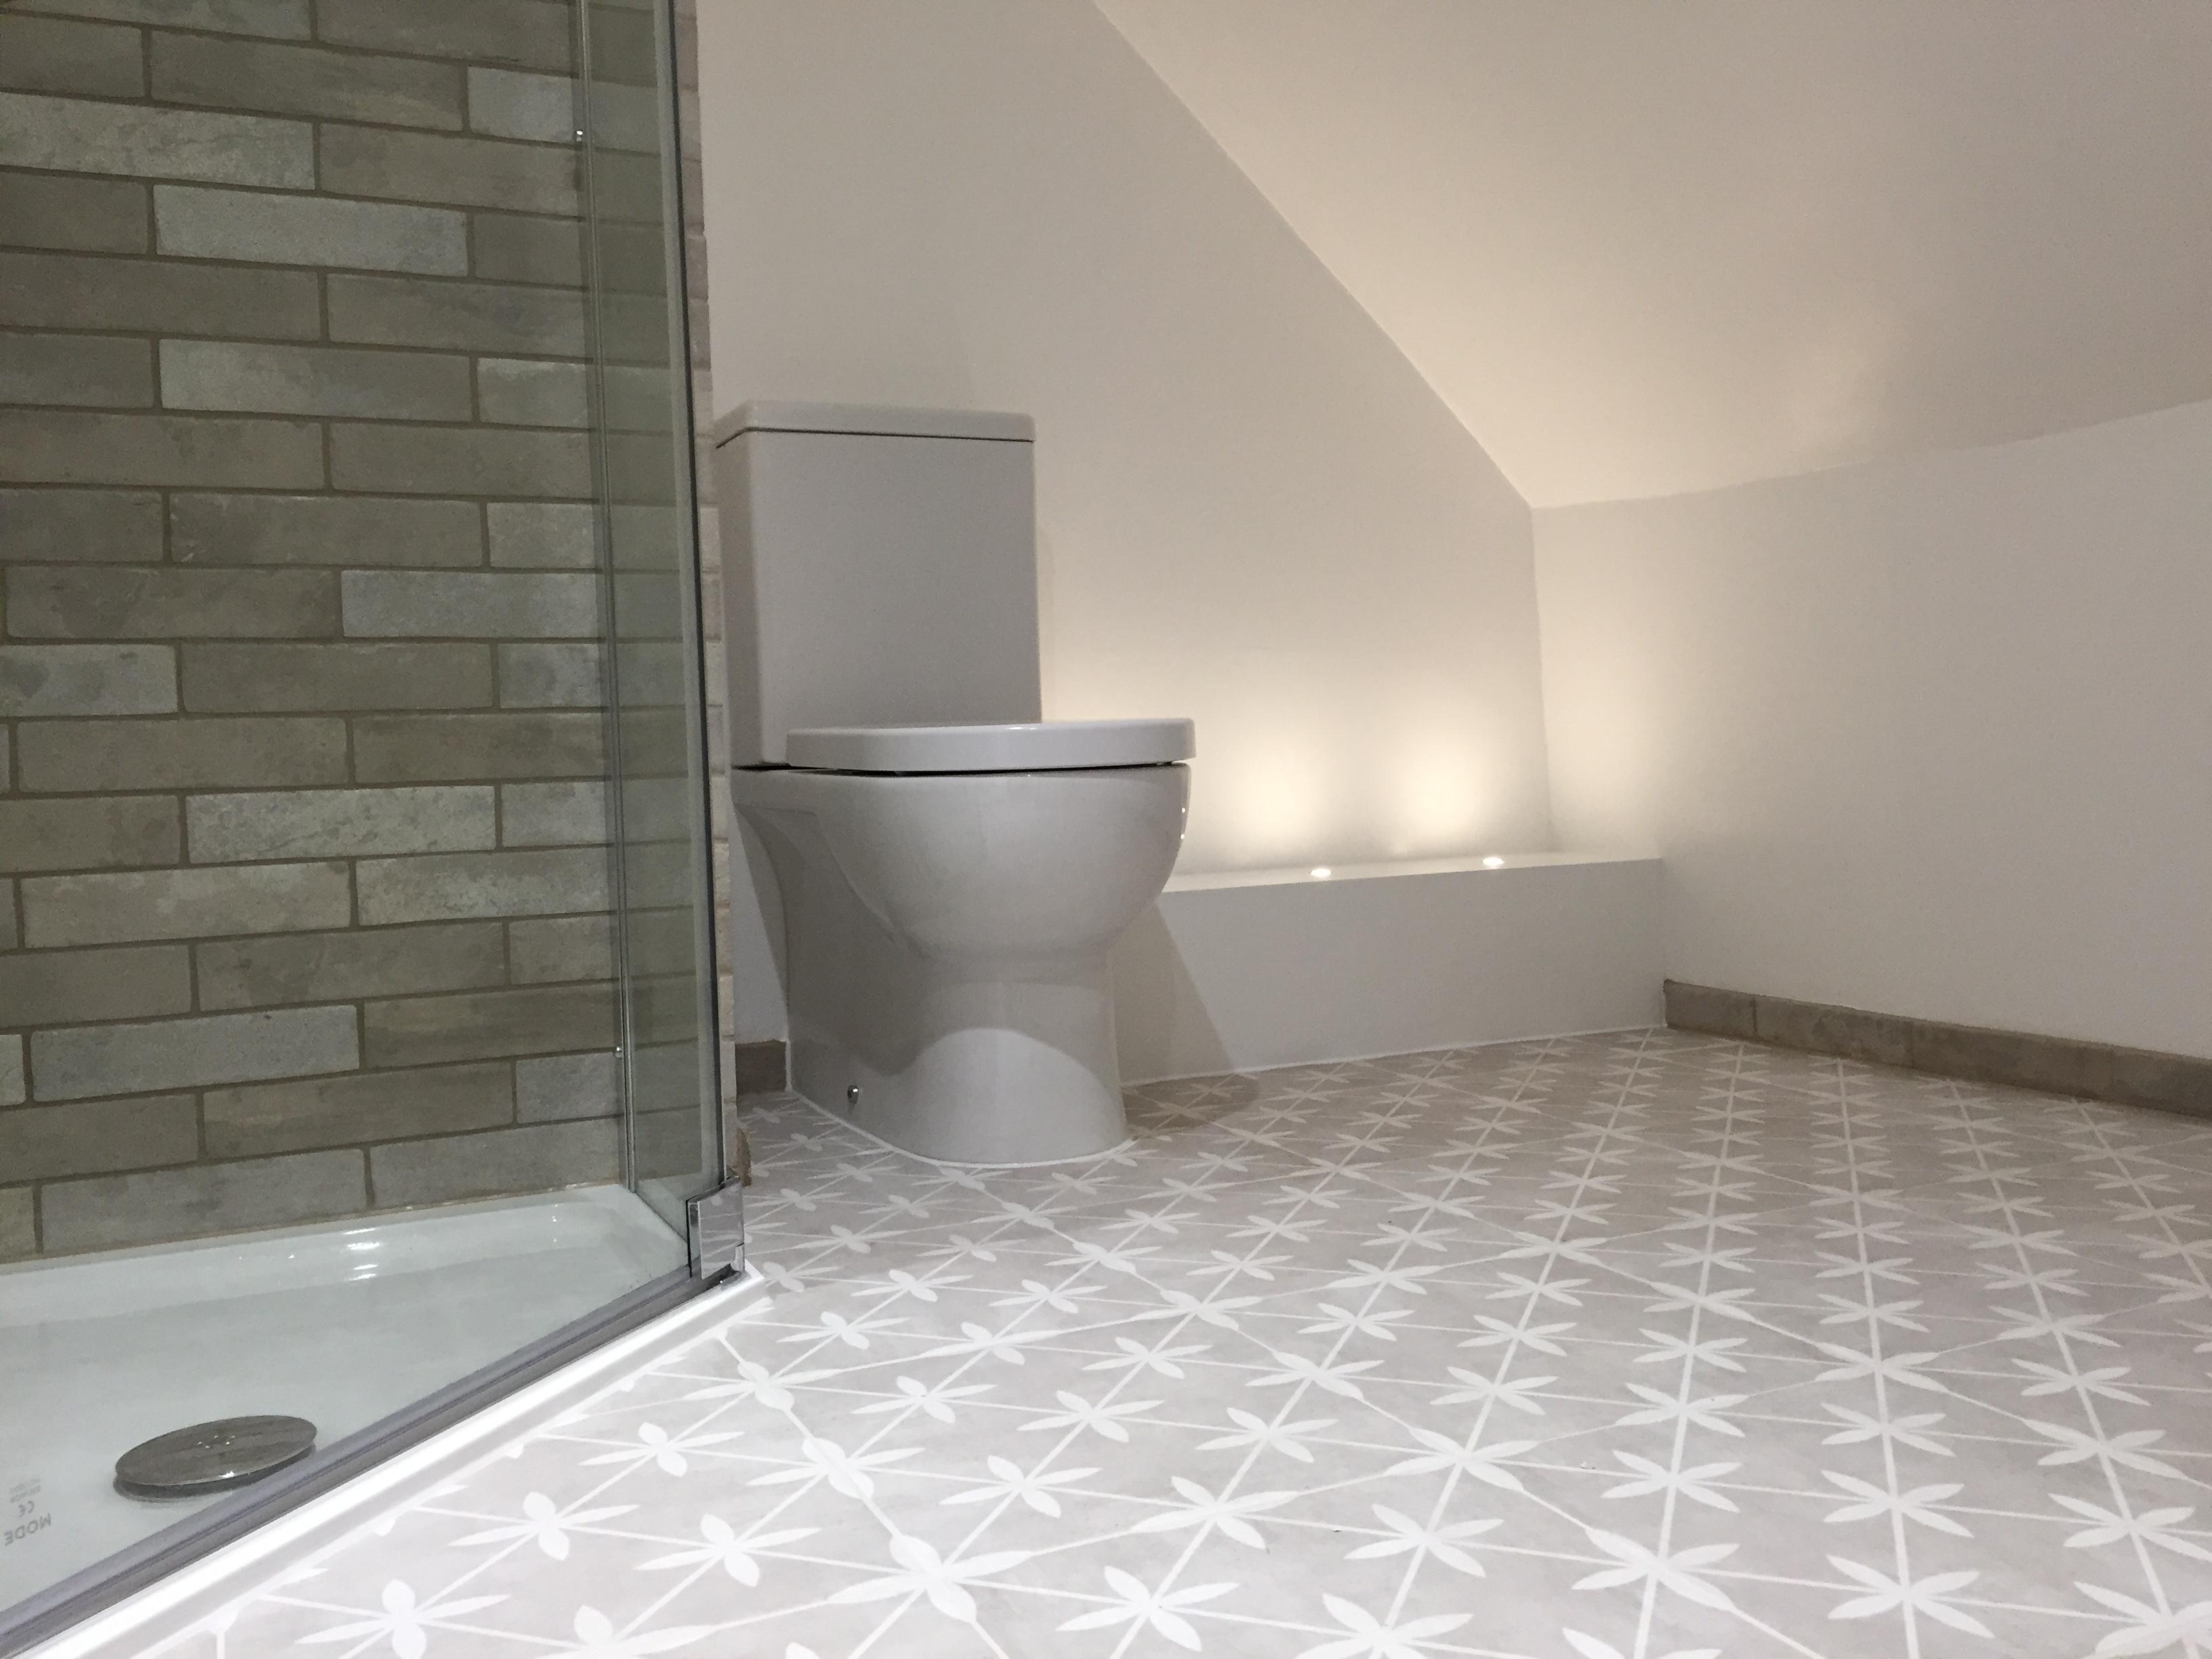 We Provide No Obligation Advice And A Free Design Service, So If Youu0027re  Thinking Of Refurbishing Your Current Bathroom Or Even A New Installation,  ...